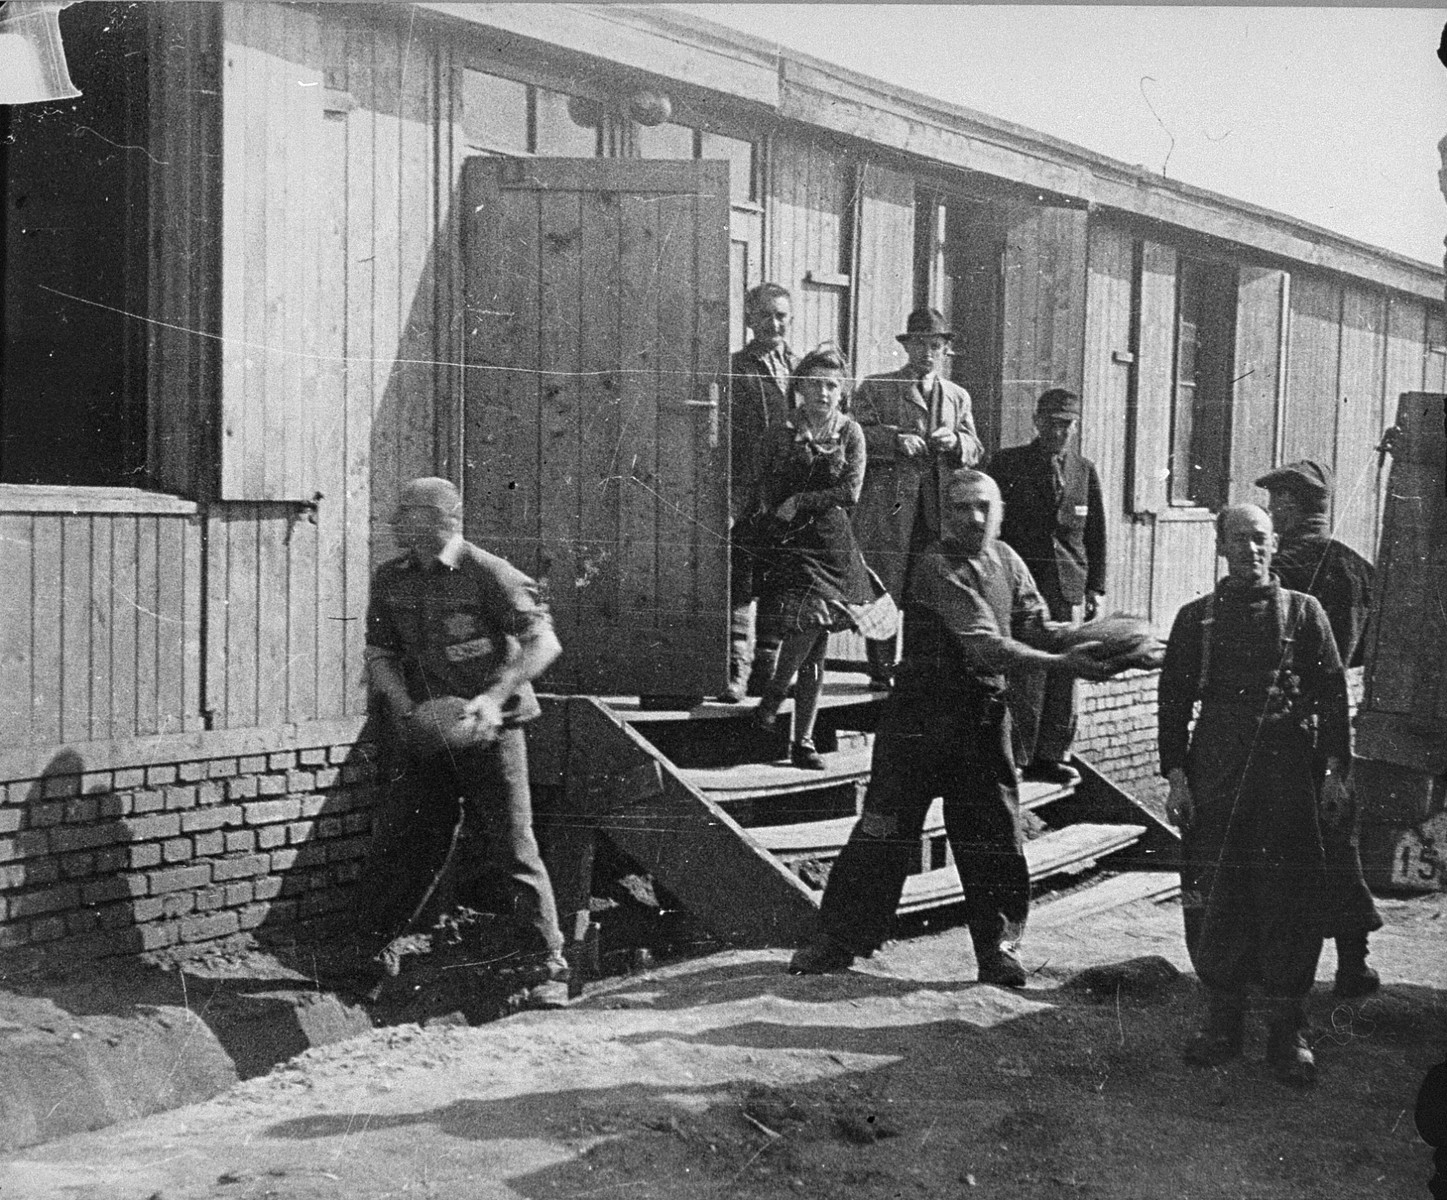 Jewish prisoners in Plaszow unload bread into the Madritch factory.  The Madritch factory utilized concentration camp labor to produce uniforms for the German army.  Pictured on the steps are Samuel Brand and his wife, Ala Fass Brand.